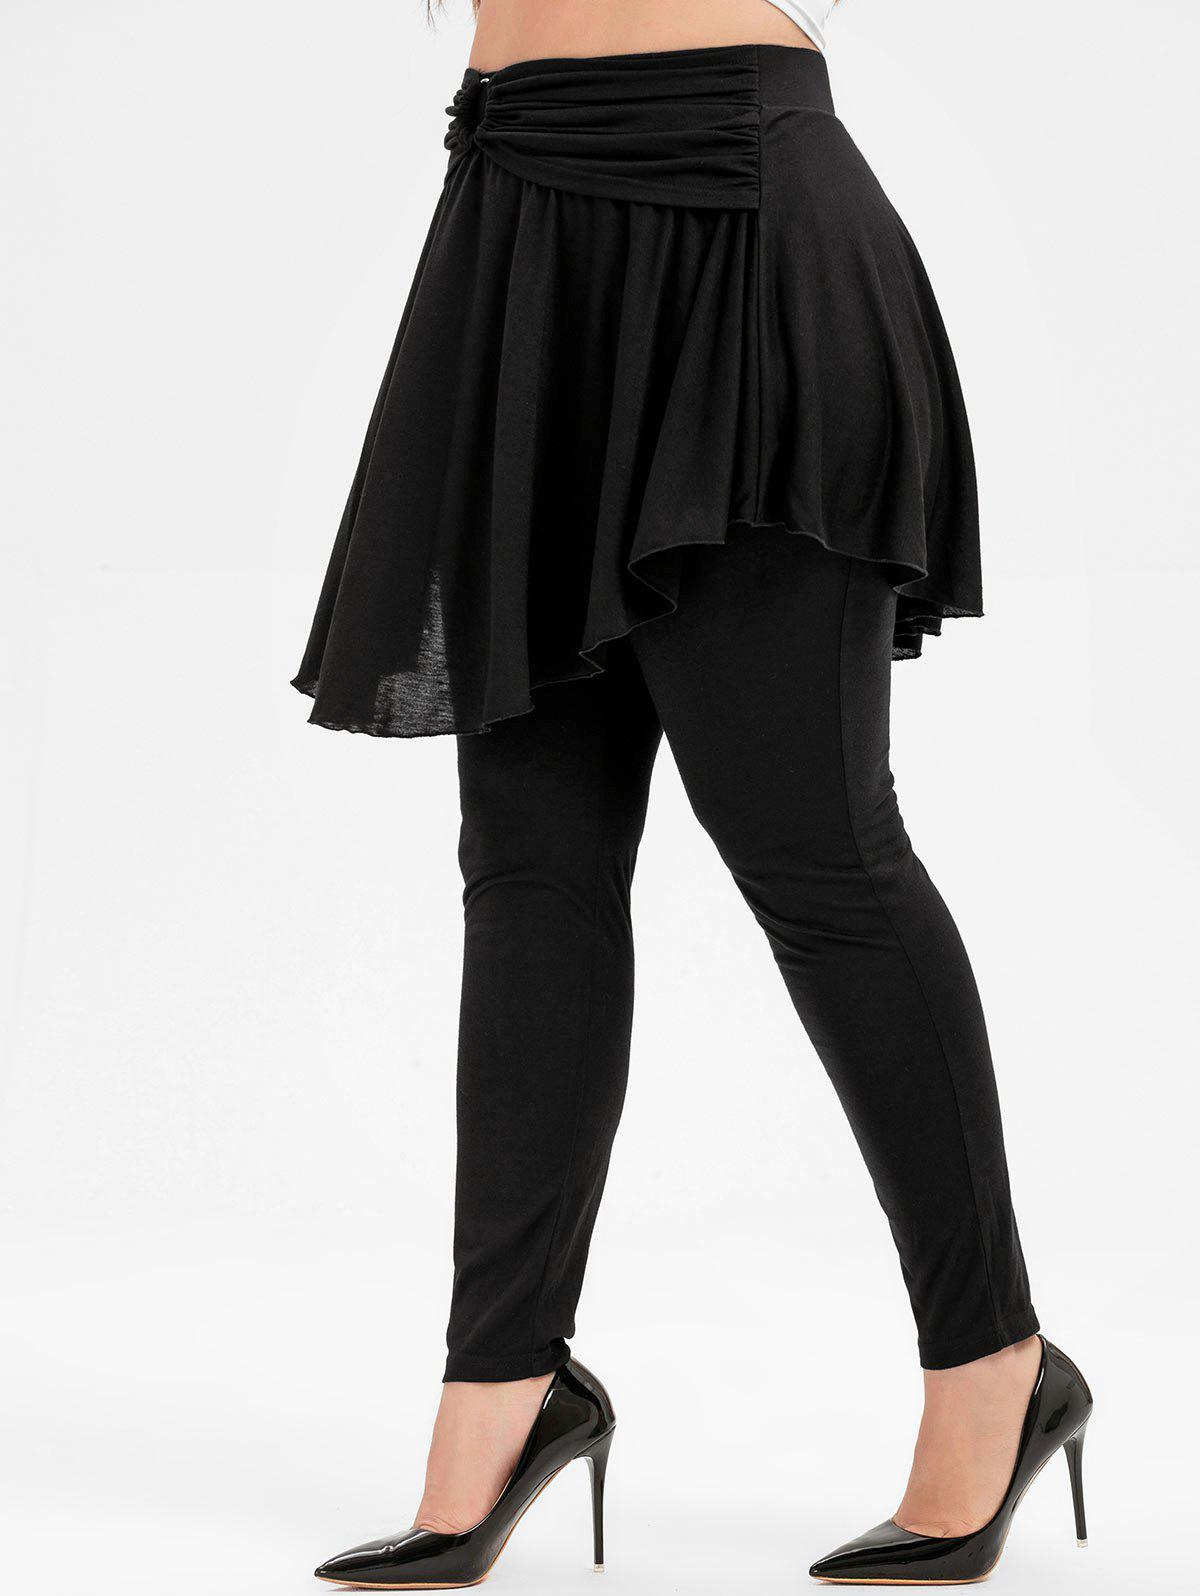 Plus Size High Rise Skirted Pants - BLACK L